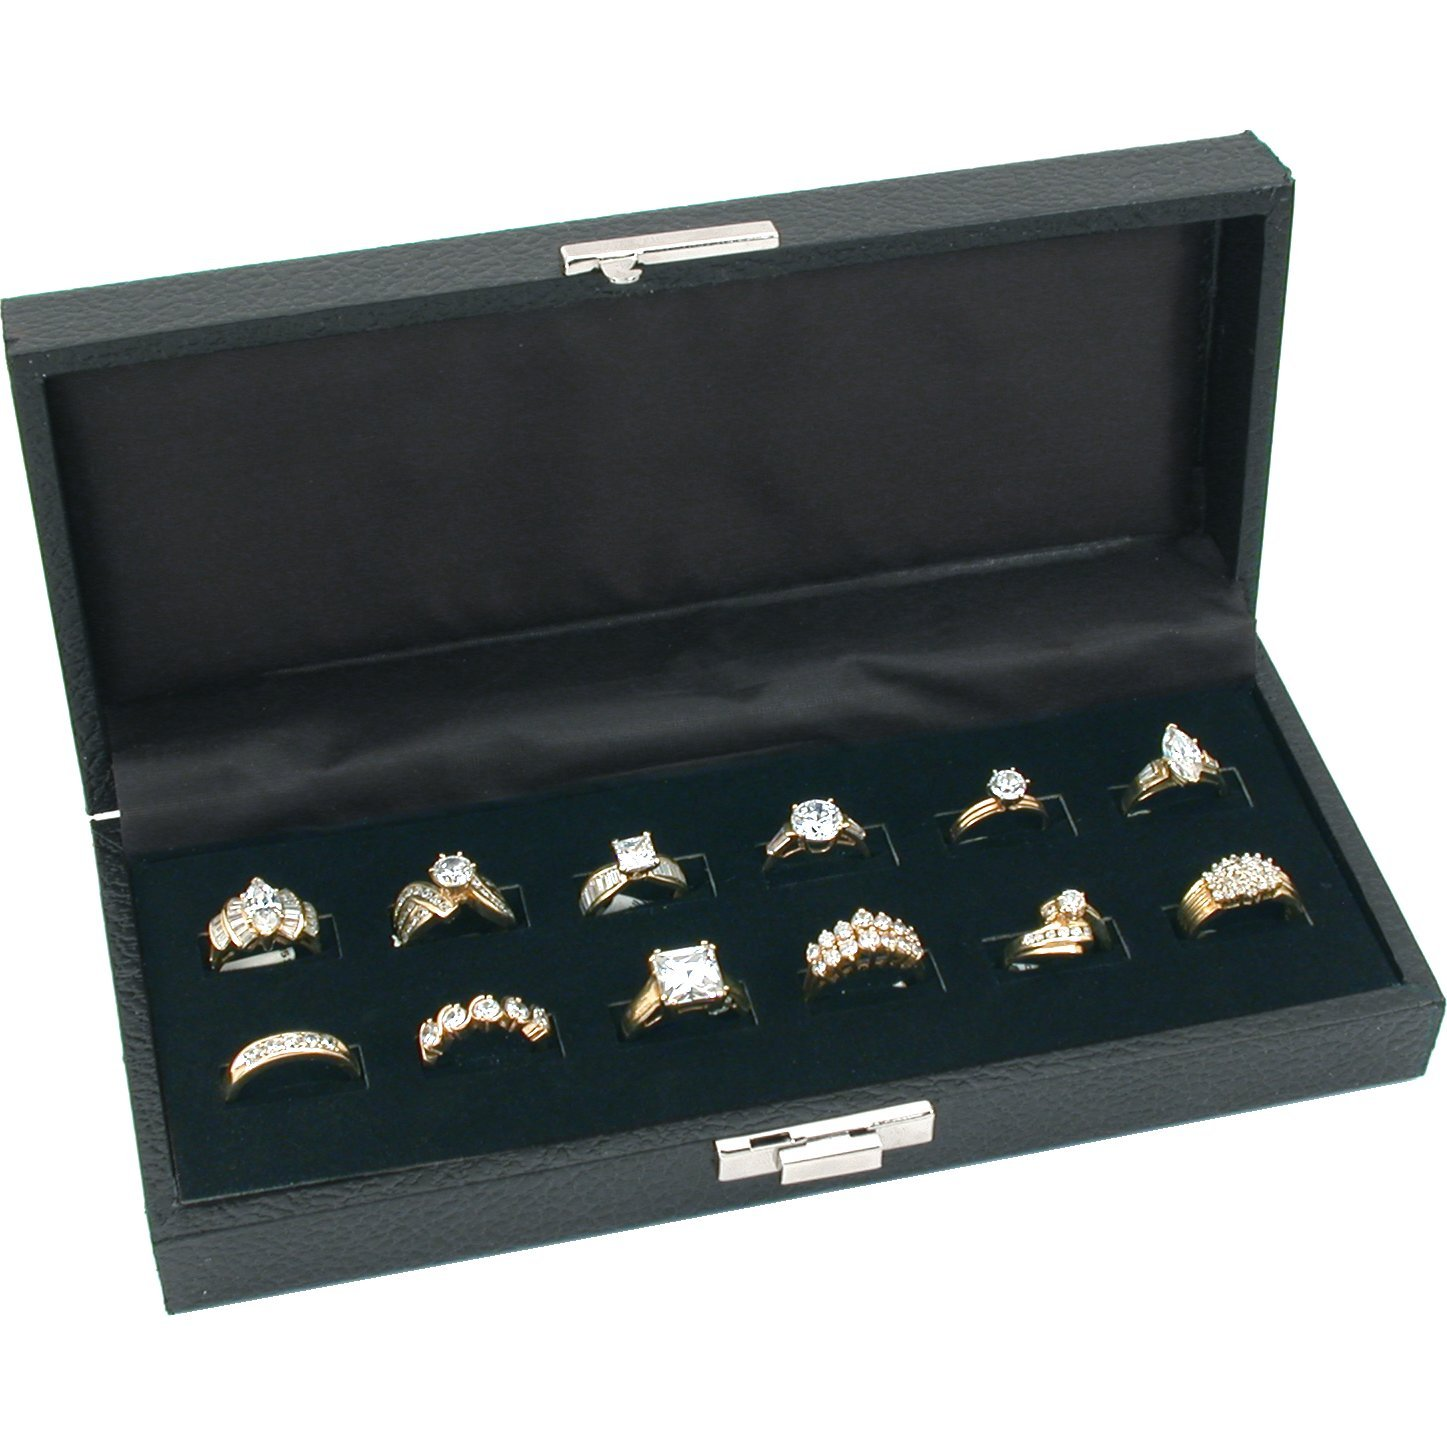 FindingKing 12 Wide Slot Ring Tray Display Jewelry Showcase Black